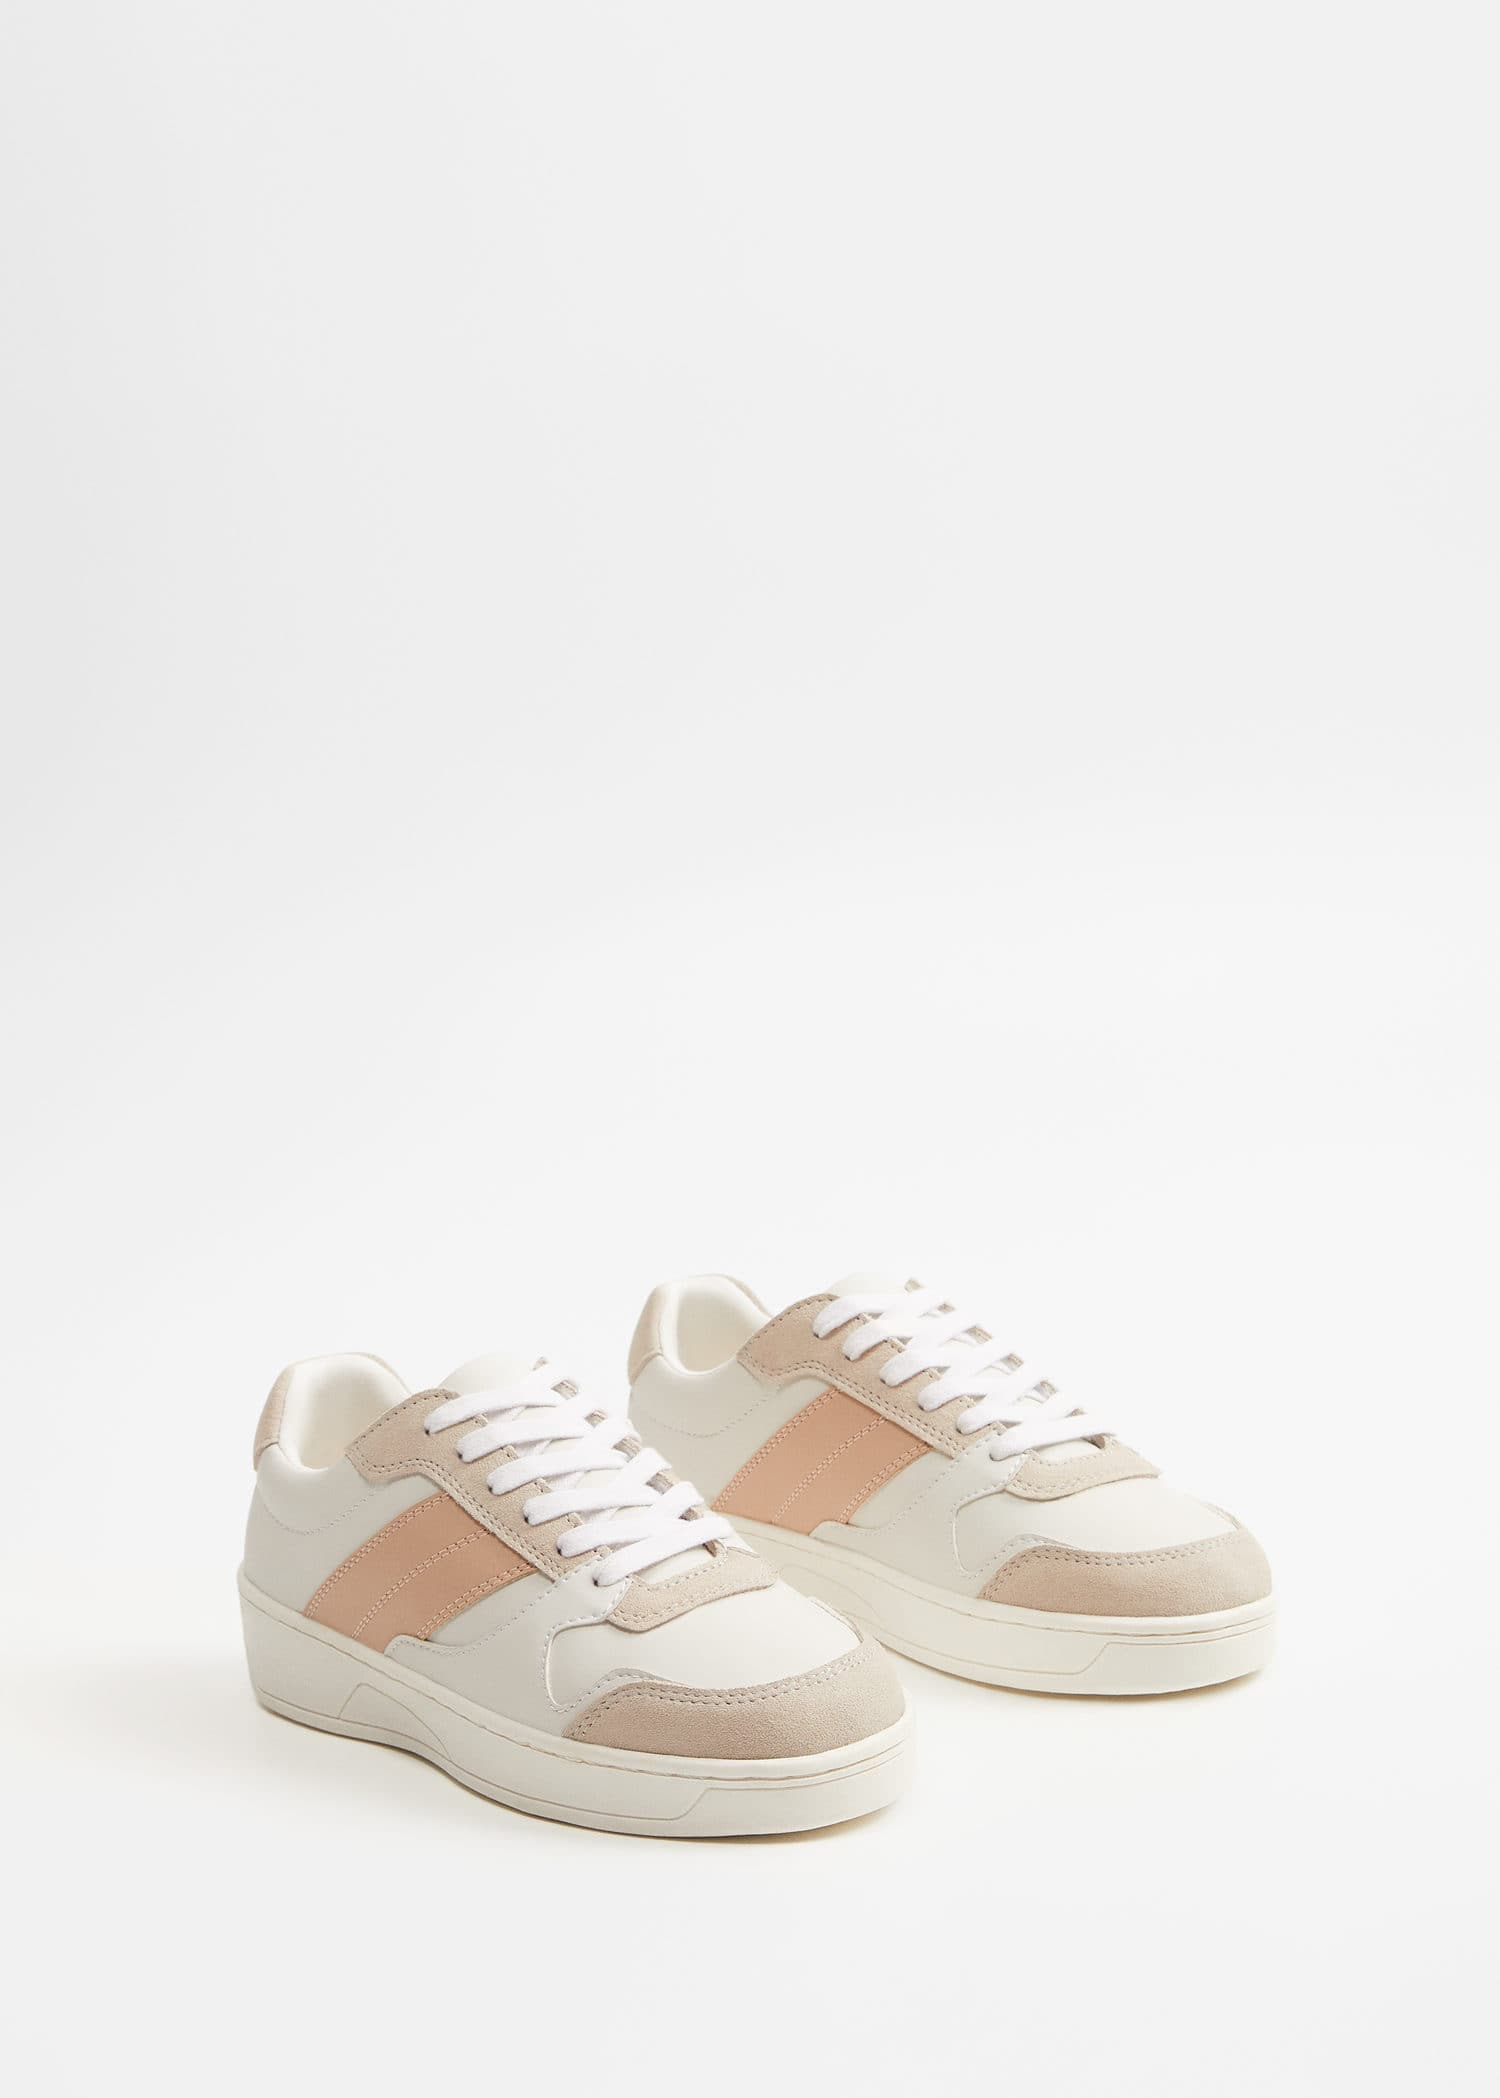 Lace Leather Shoes Sneakers Up Plus SizesVioleta By QrCoeWEdBx